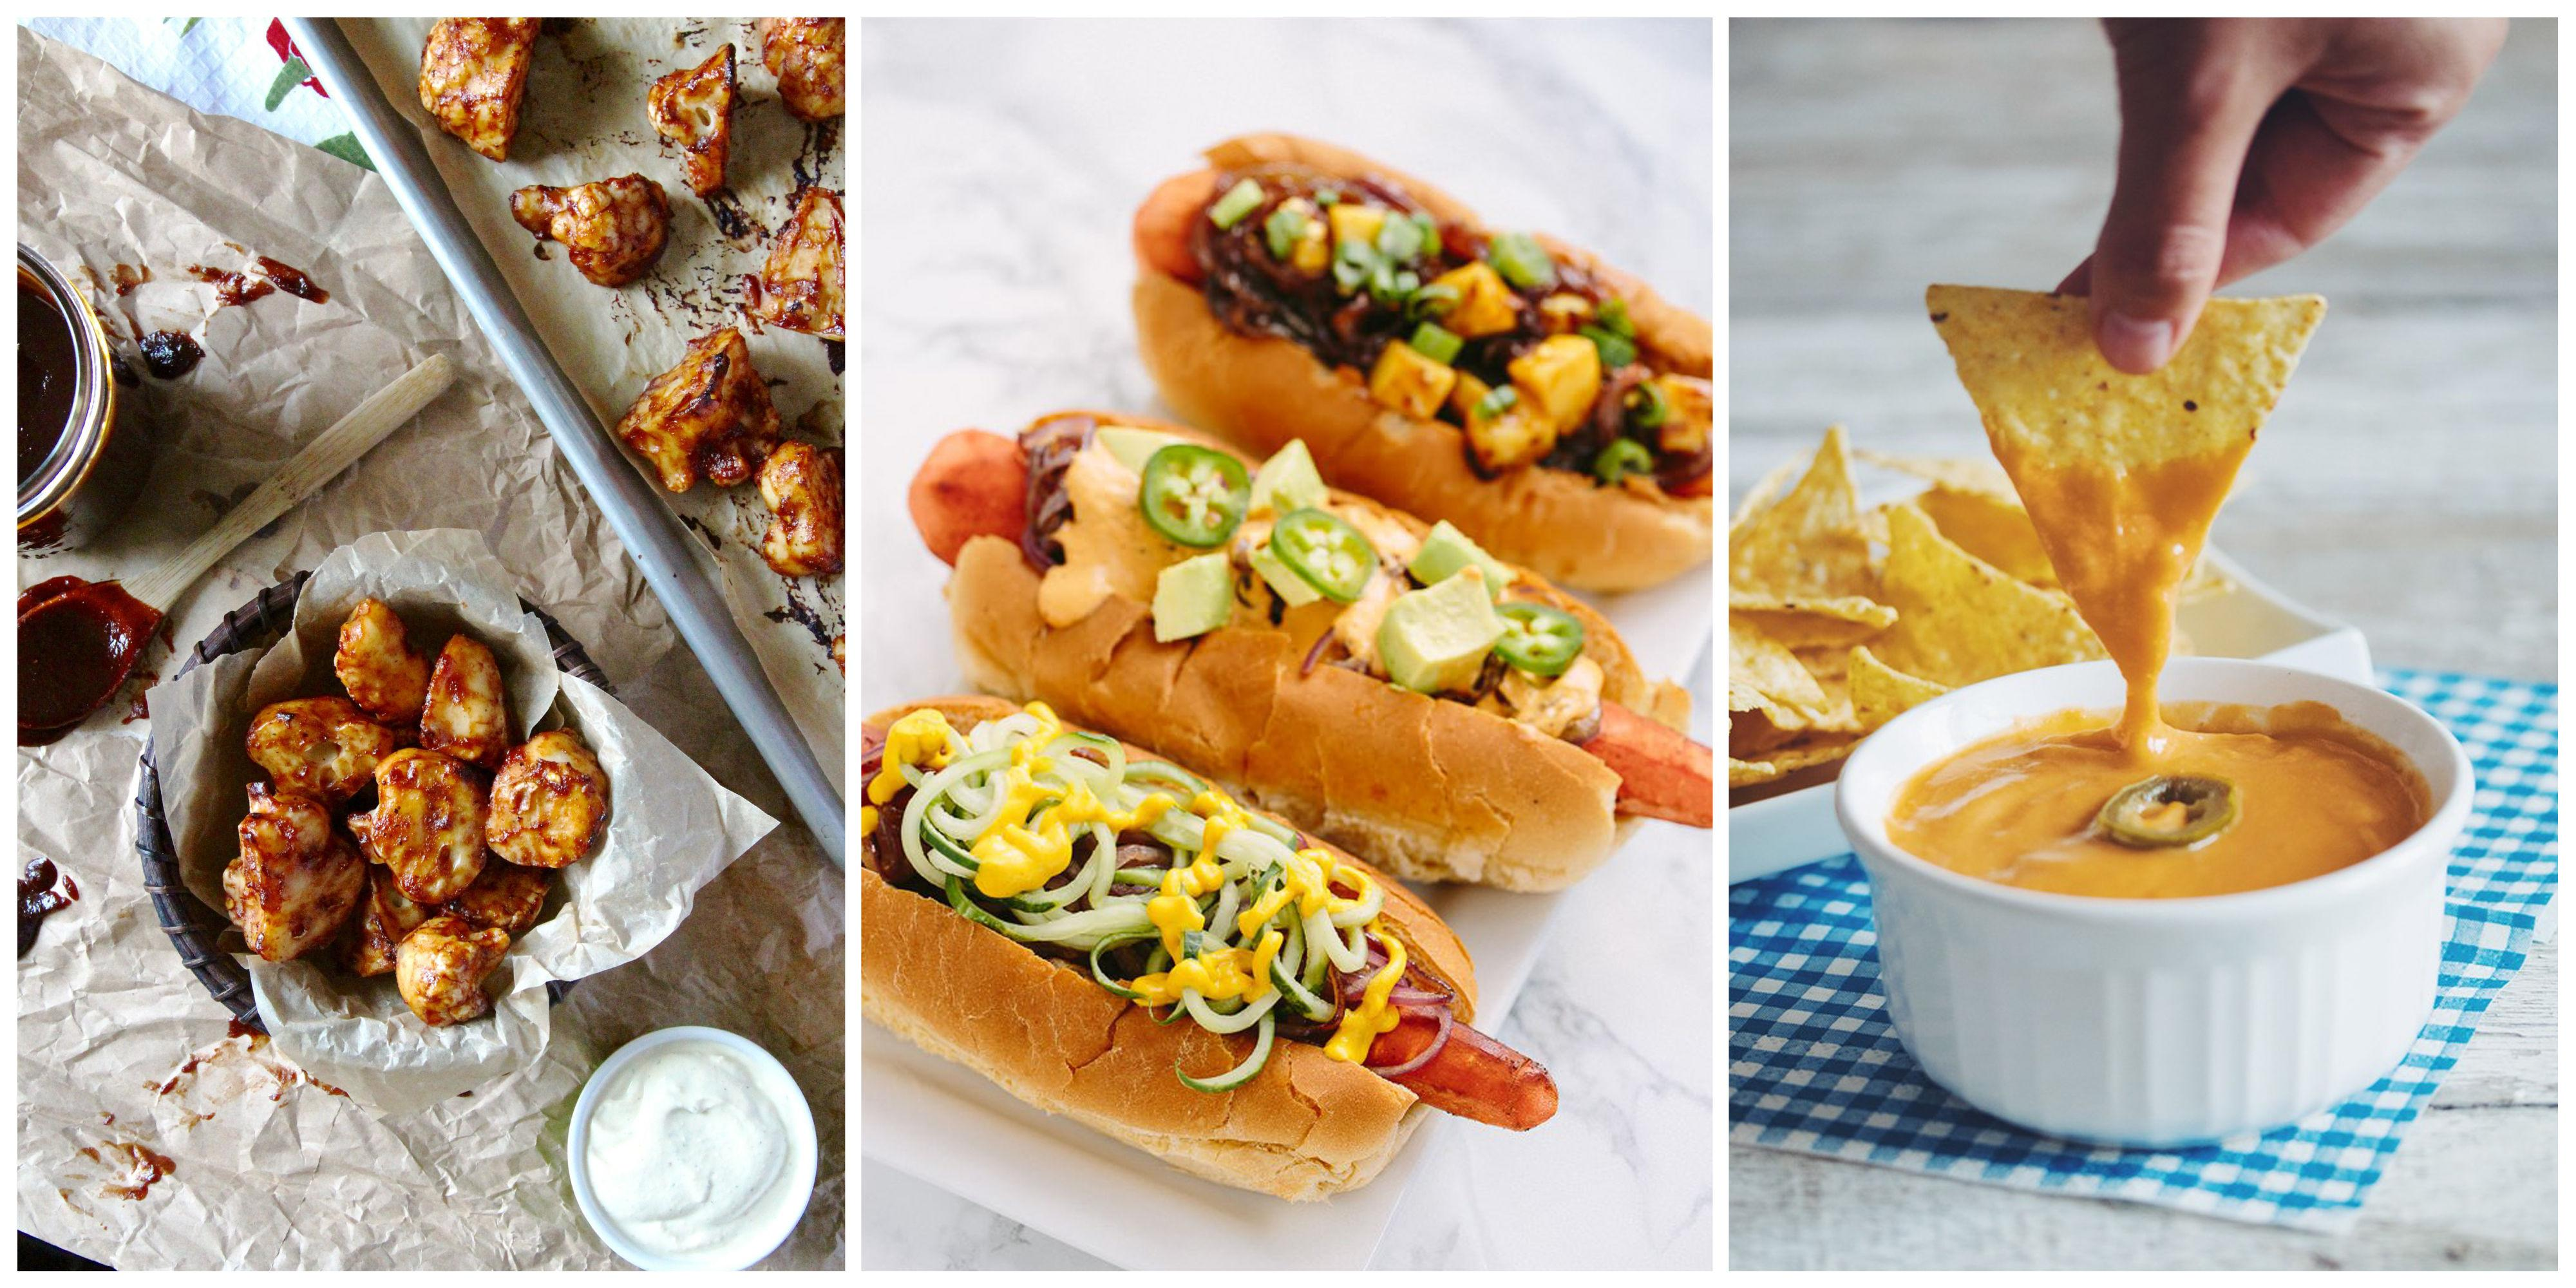 10 junk foods you can make out of veggies